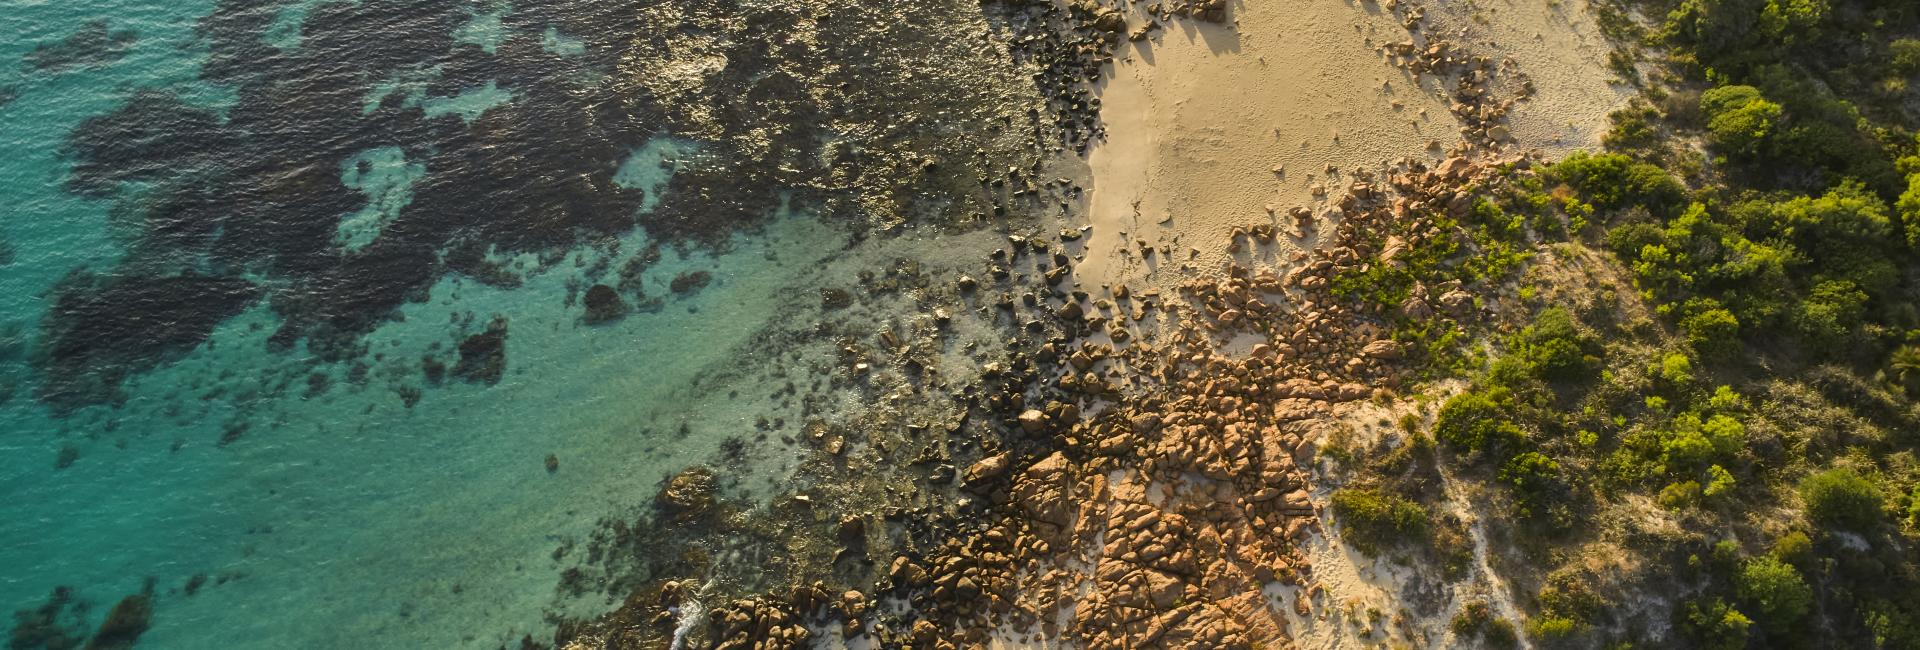 Drone aerial of turquoise ocean, red rocks, and green bushland